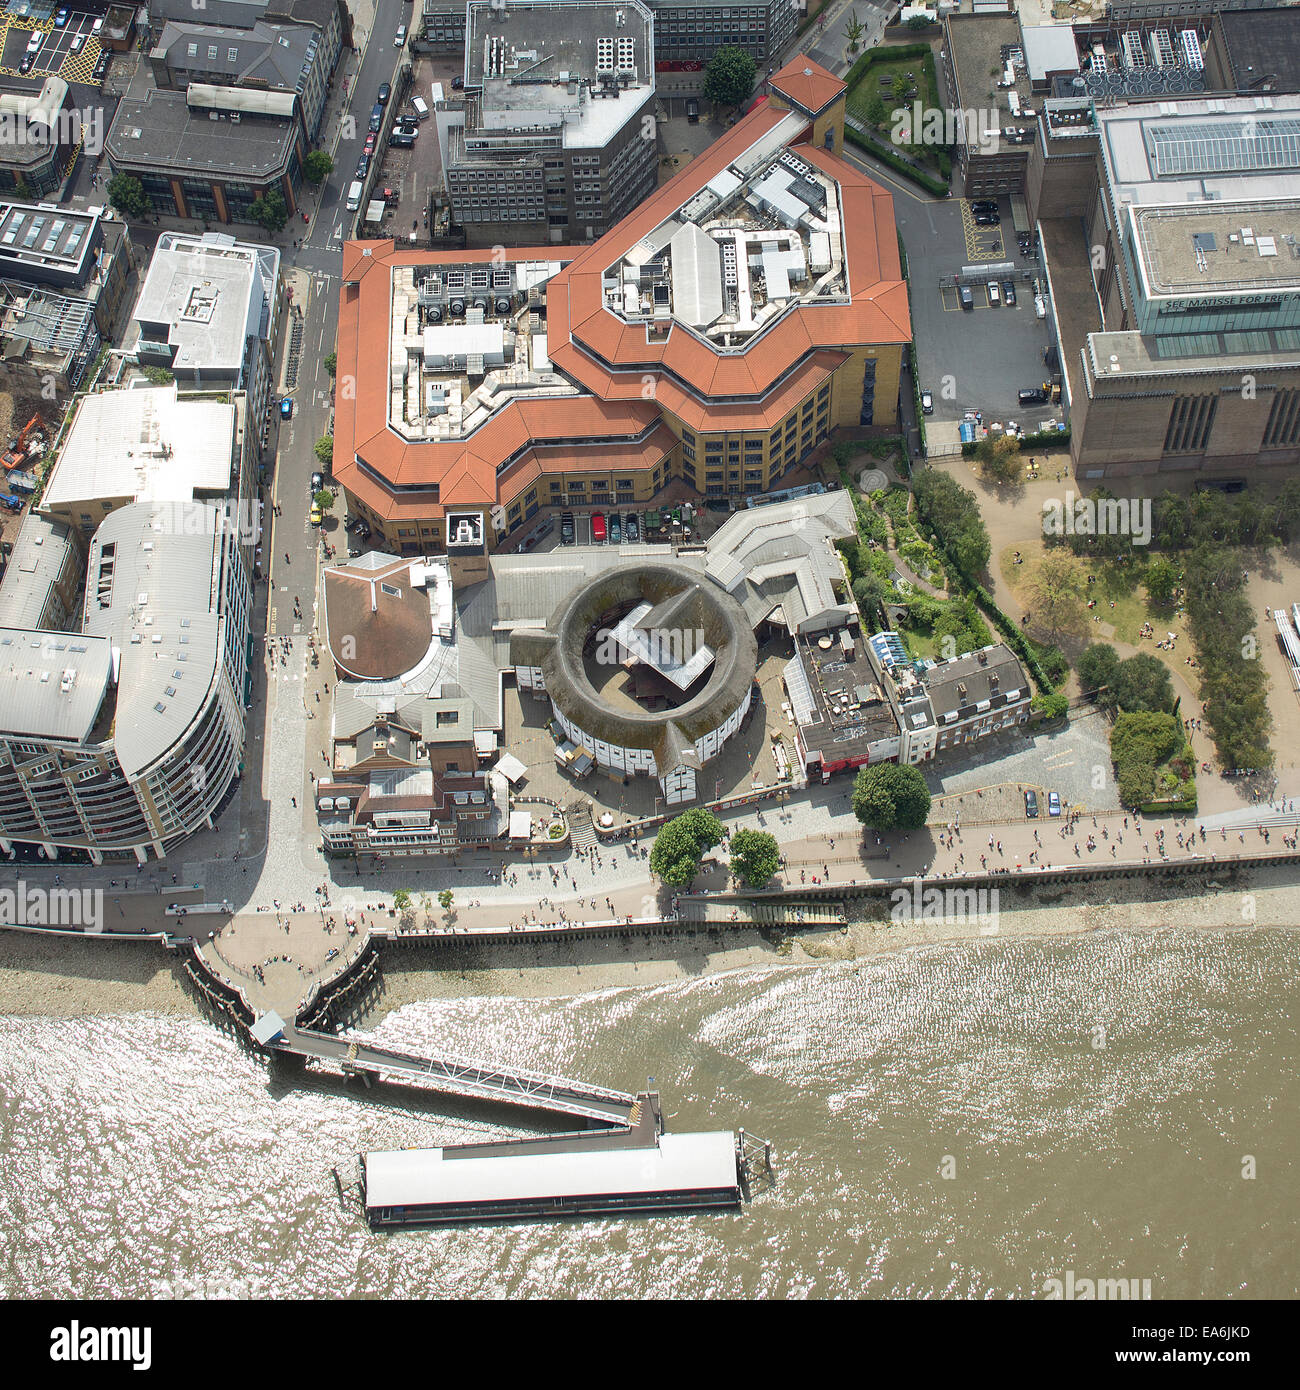 UK, London, Aerial view of Globe Theatre - Stock Image